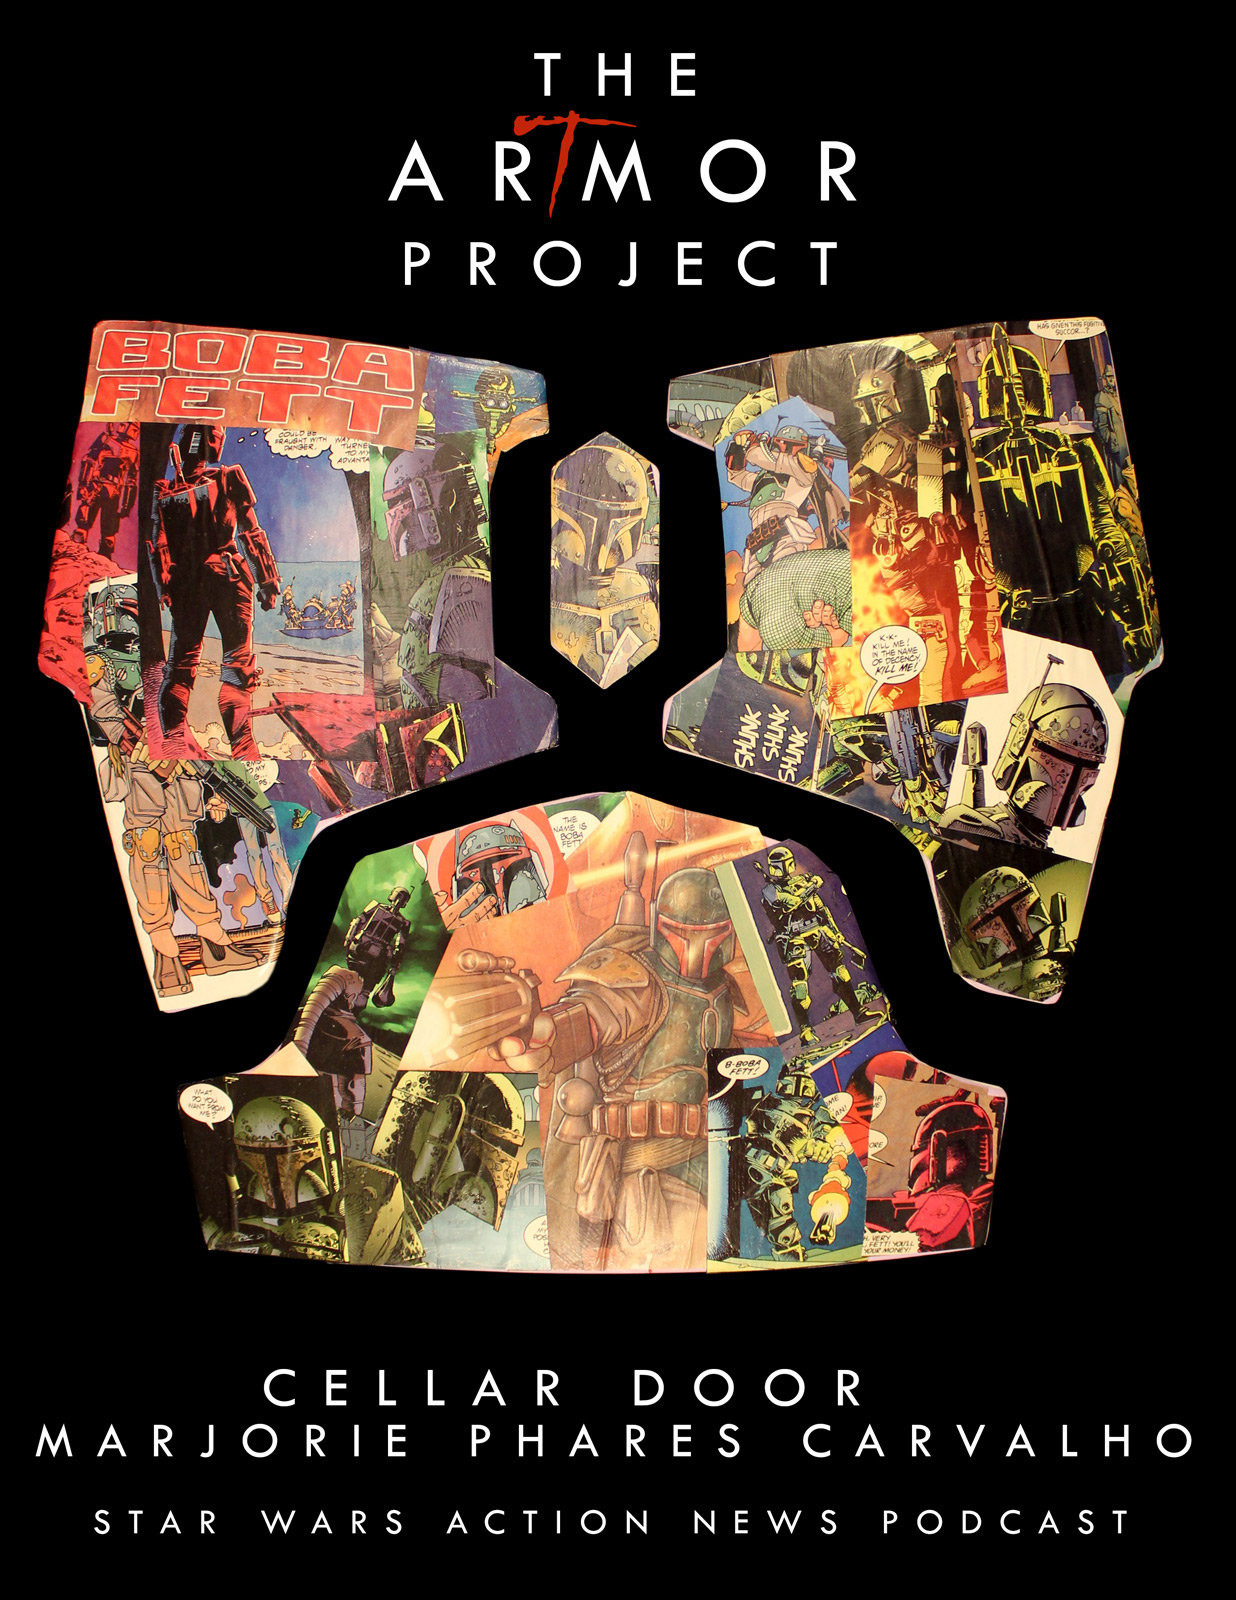 ArTmor 2015: Cellar Door